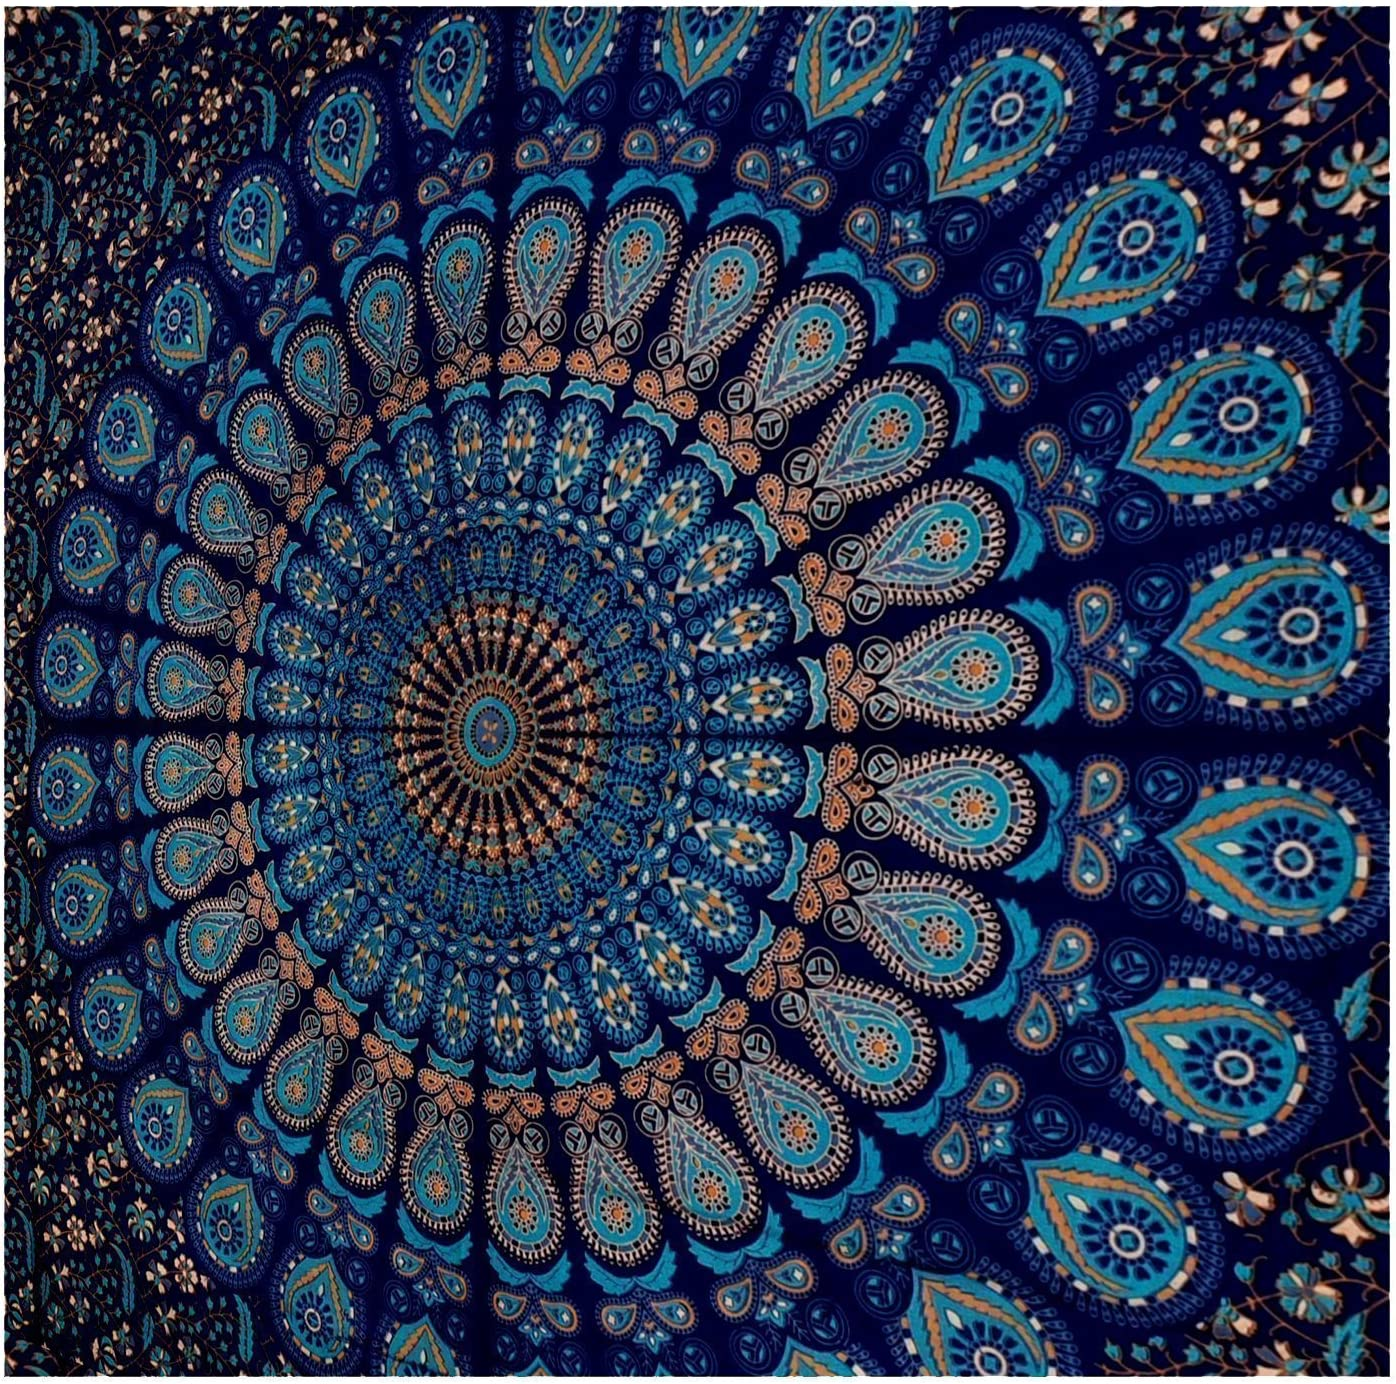 Amazon Com Globus Choice Inc Blue Twin Mandala Tapestry Wall Hanging Indian Cotton Tapestries Bedspread Picnic Beach Throw Blanket Wall Art Hippie Tapestry Home Kitchen